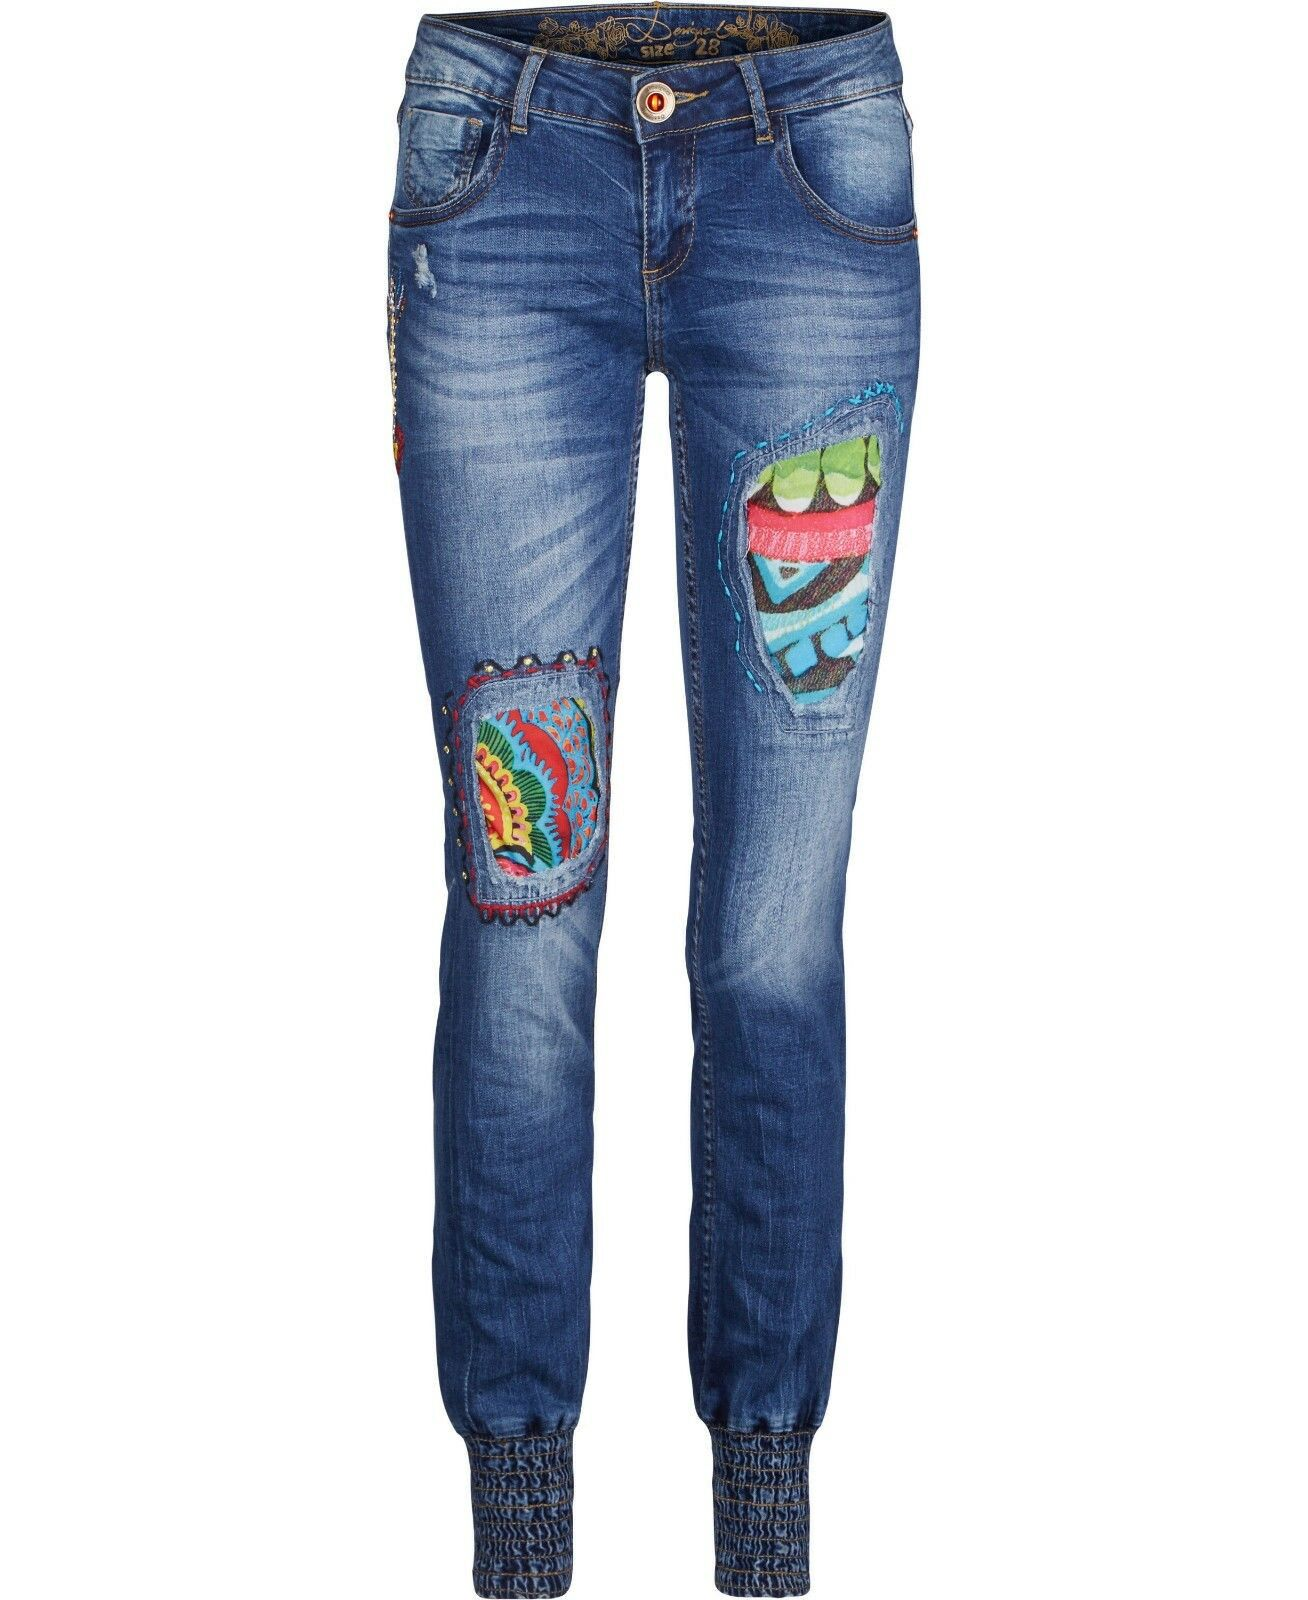 DESIGUAL AFRICA ARROW REP JEANS- SIZE USA (6)- blueE JEANS- BRAND NEW